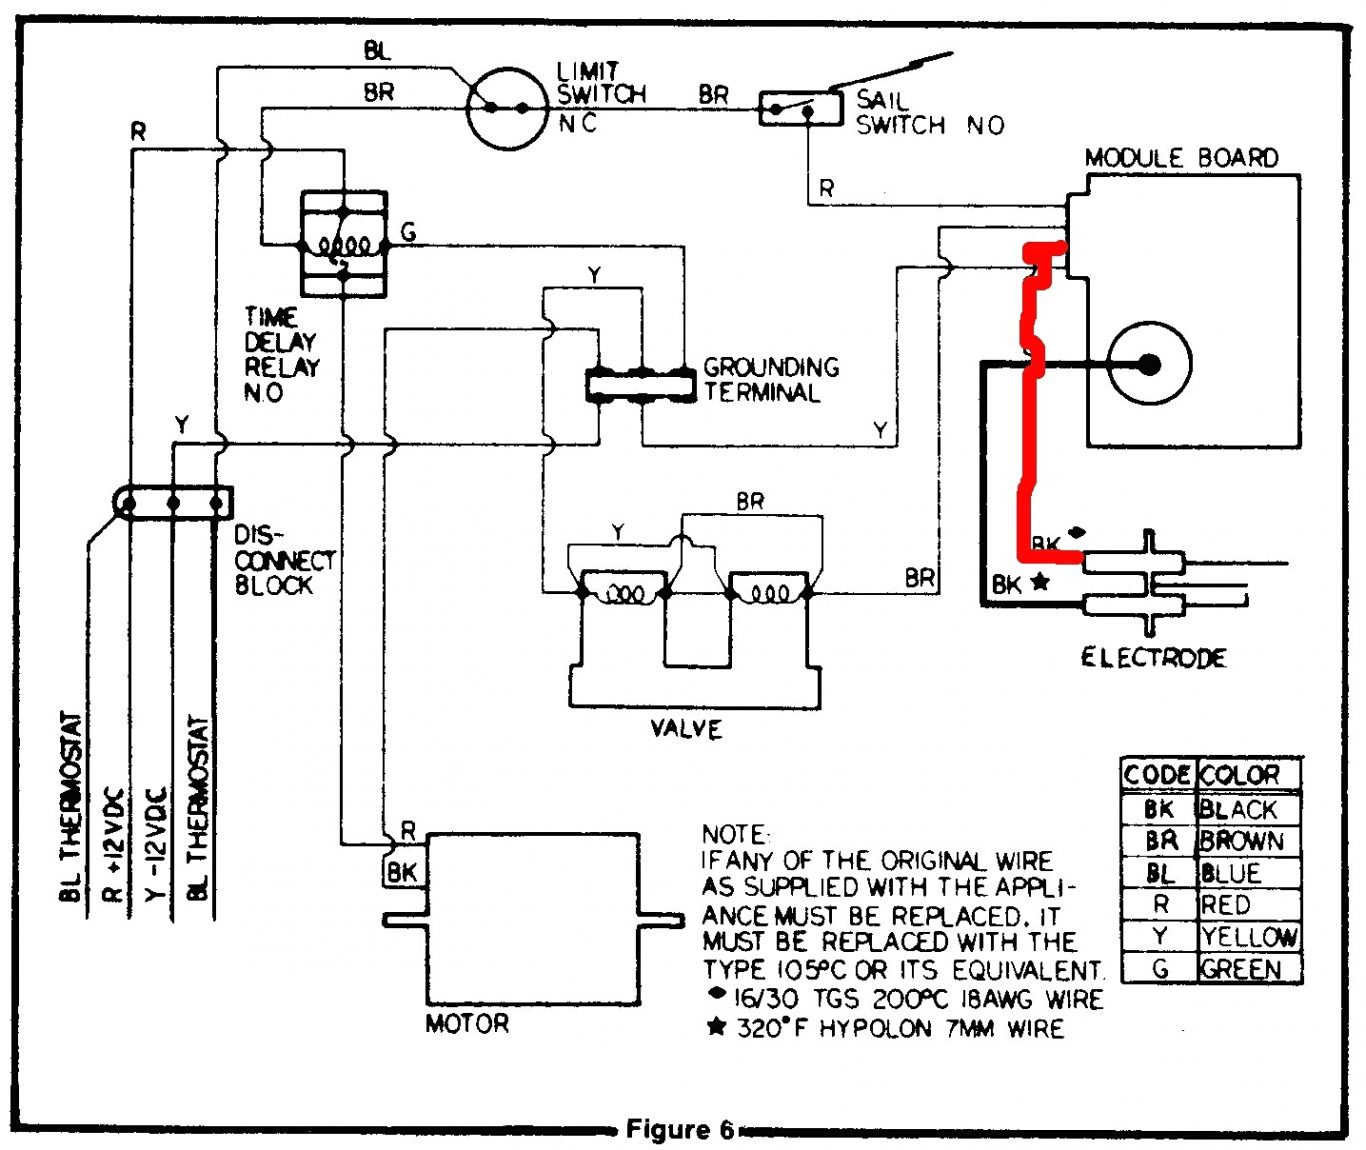 hight resolution of coleman evcon thermostat wiring diagram coleman evcon thermostat wiring diagram inspirational diagram coleman mach thermostating